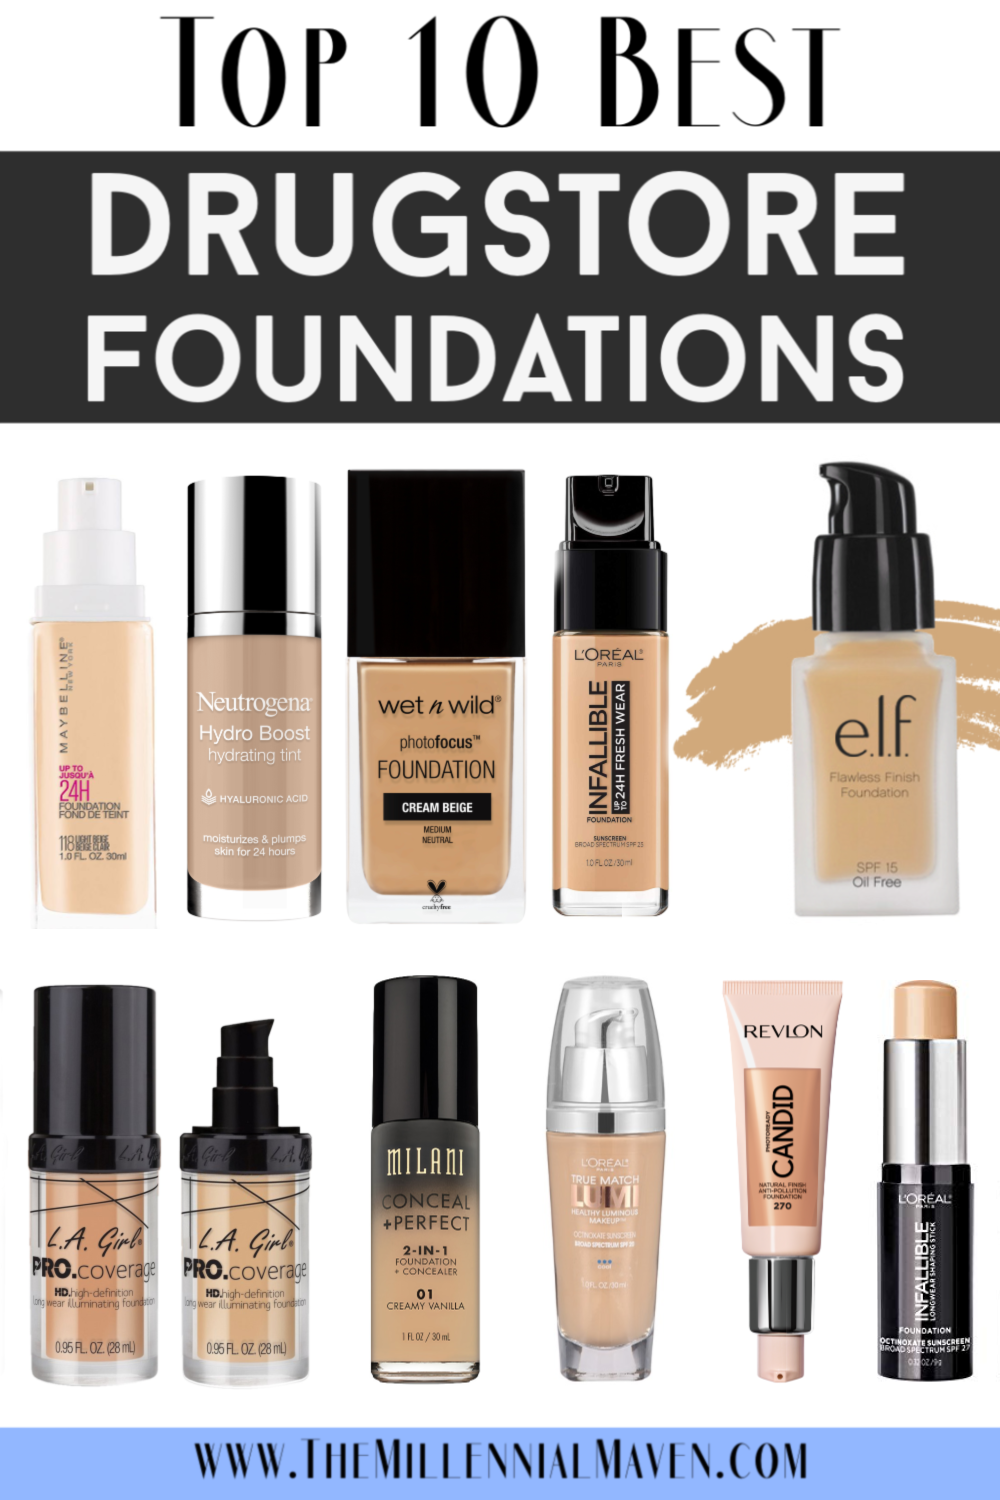 Updated 2020 Top 10 Best Foundations At The Drugstore Best Drugstore Foundations The Millennial Maven Best Drugstore Foundation Drugstore Foundation Best Drugstore Makeup